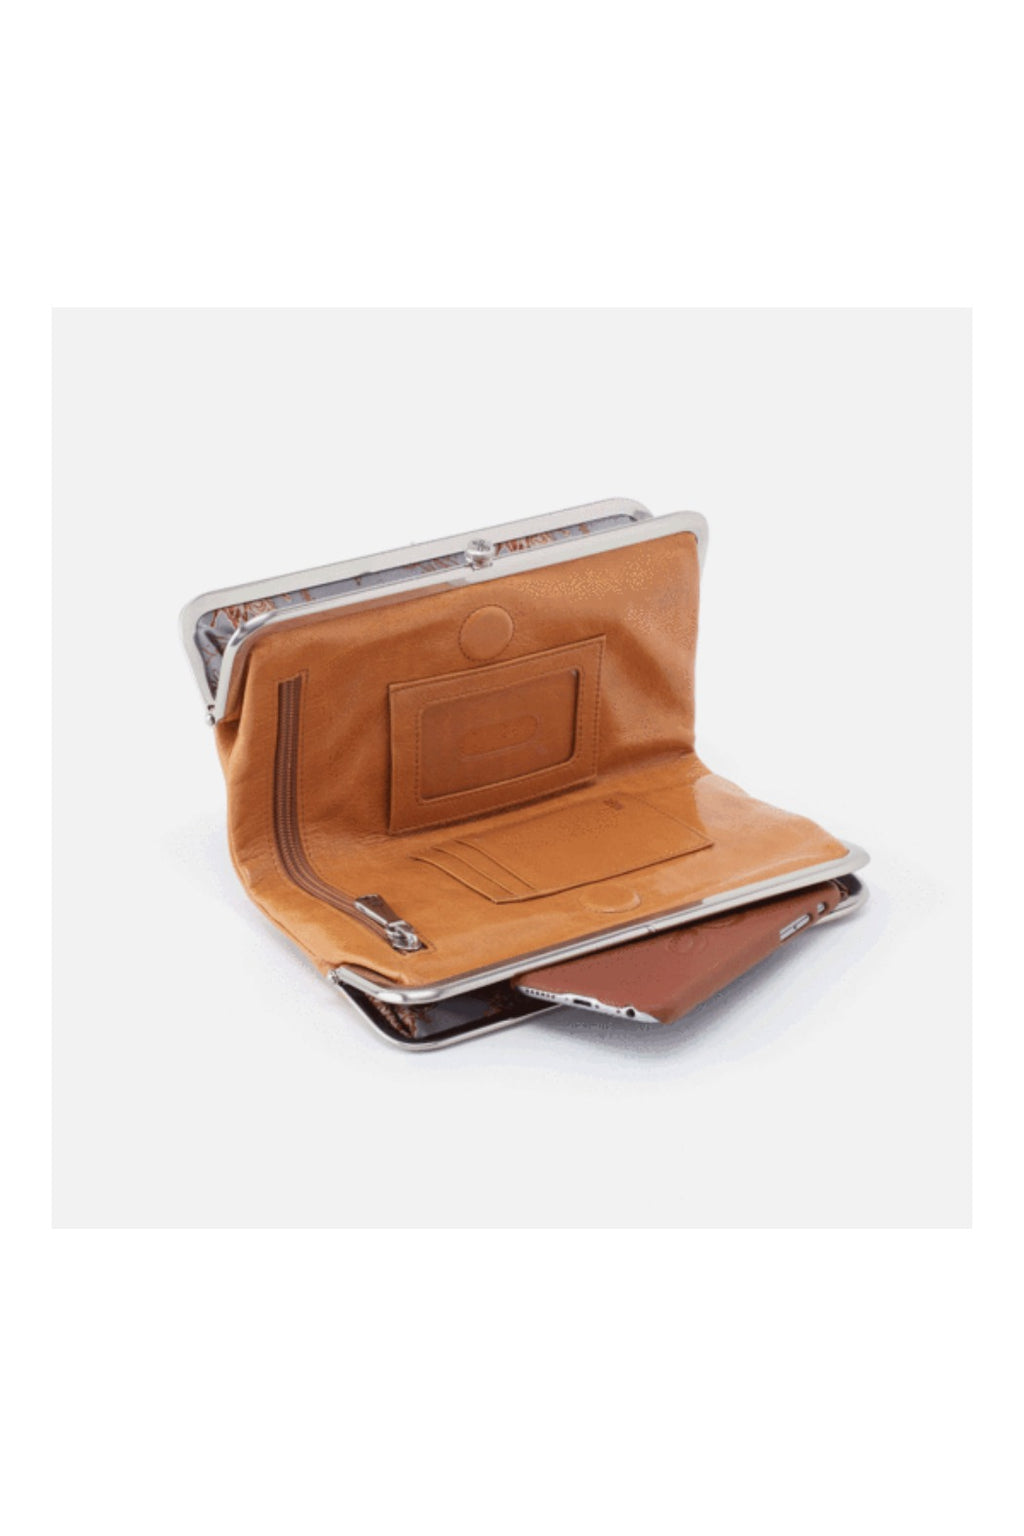 Hobo Lauren Wallet - Honey